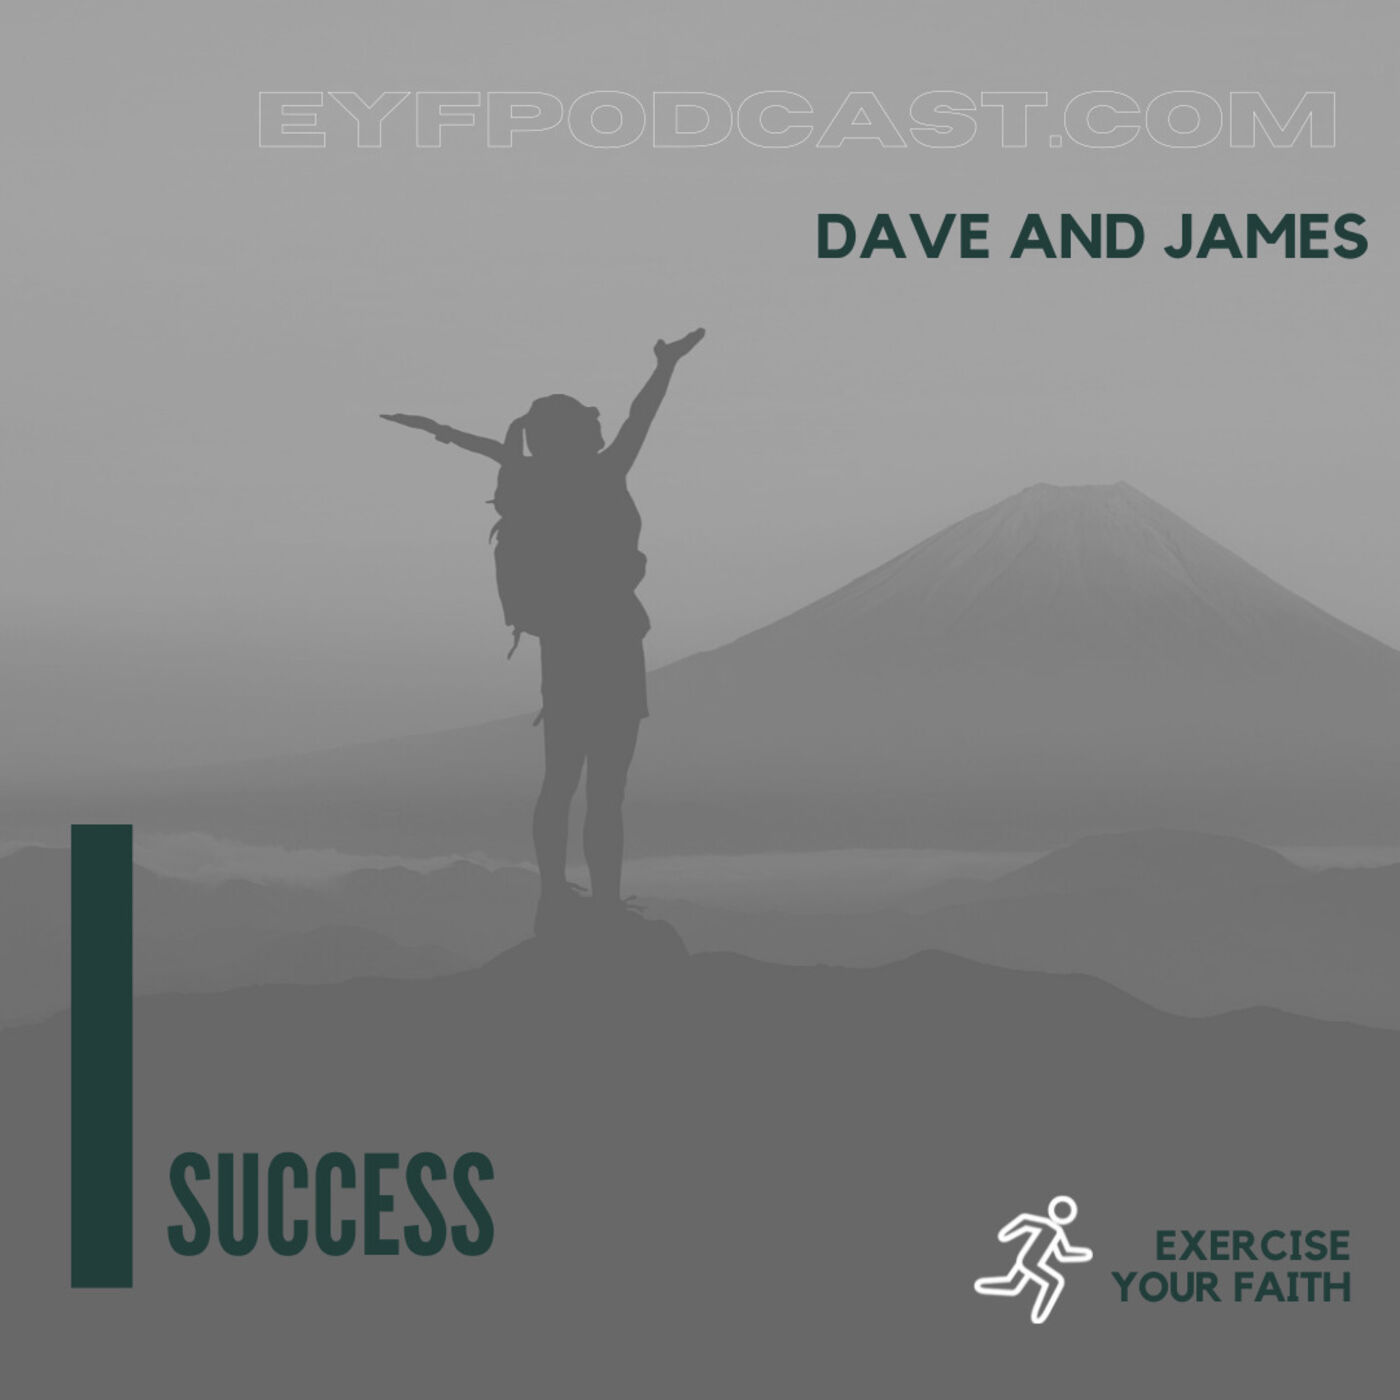 EYFPodcast- Exercise Your Faith by learning the Secret to Successful Christian Living